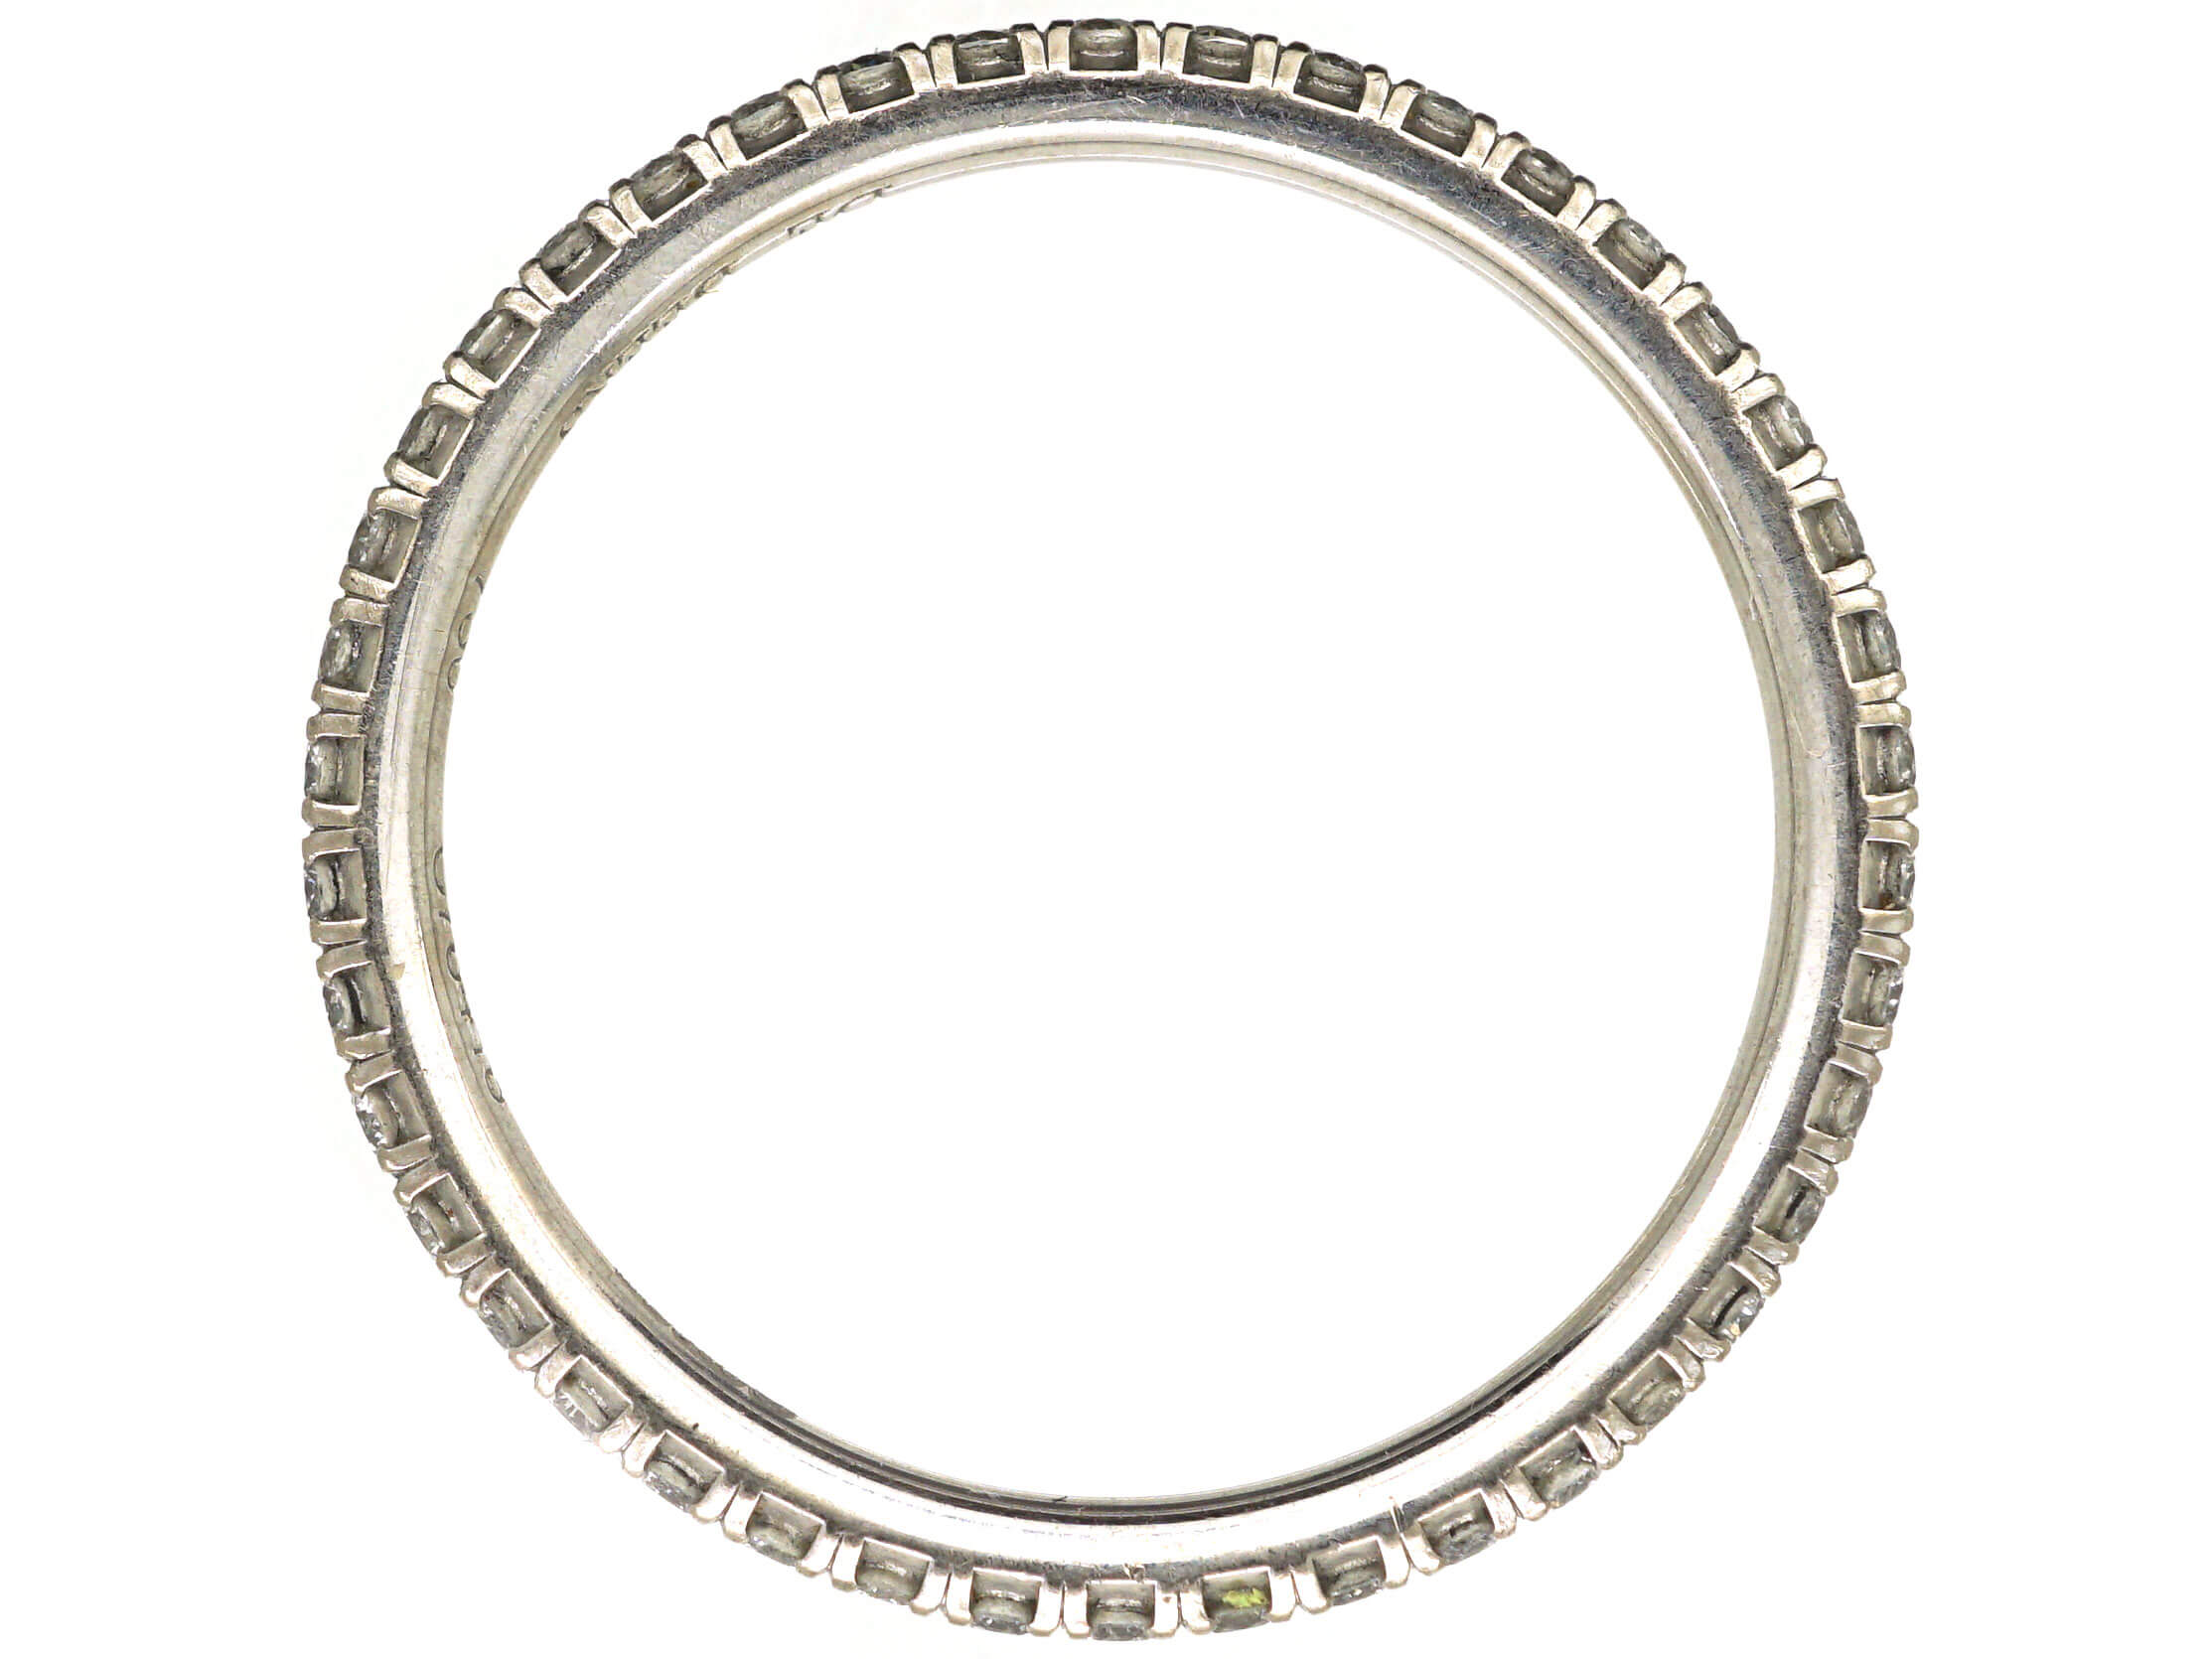 18ct White Gold & Diamond Eternity Ring by De Beers